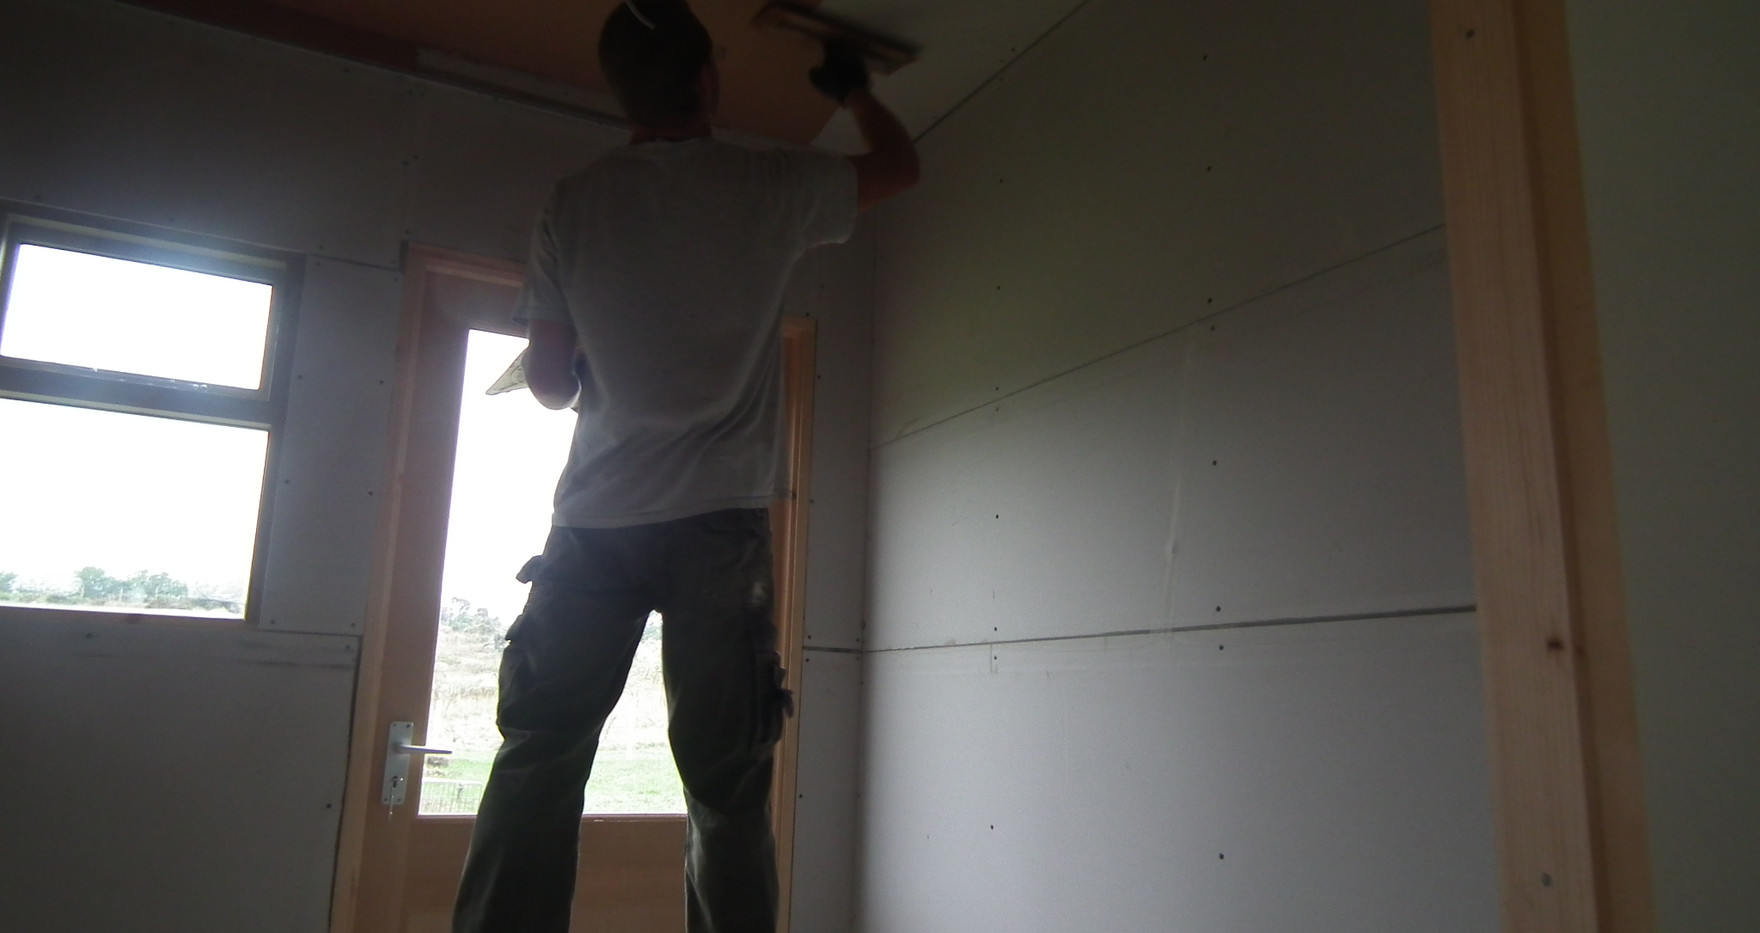 Working on one of the bedrooms